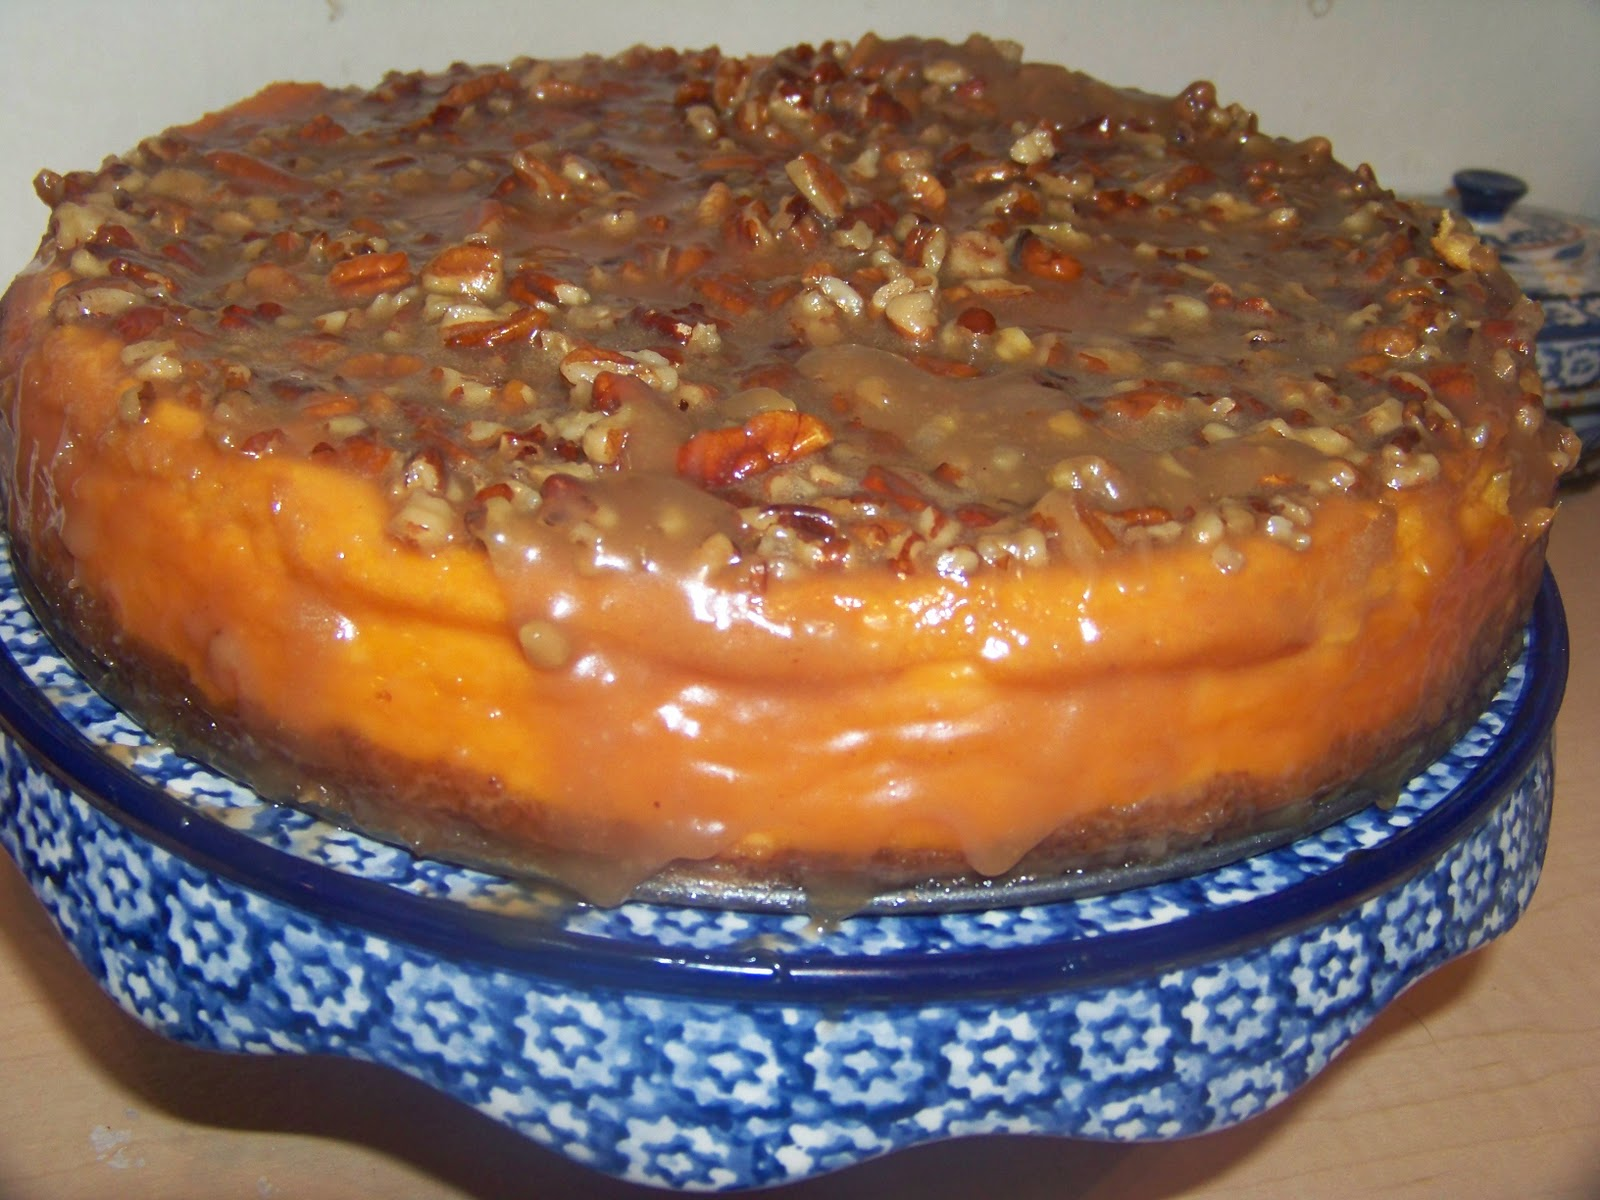 Sweet Potato Cheesecake with Caramel Pecan Glaze